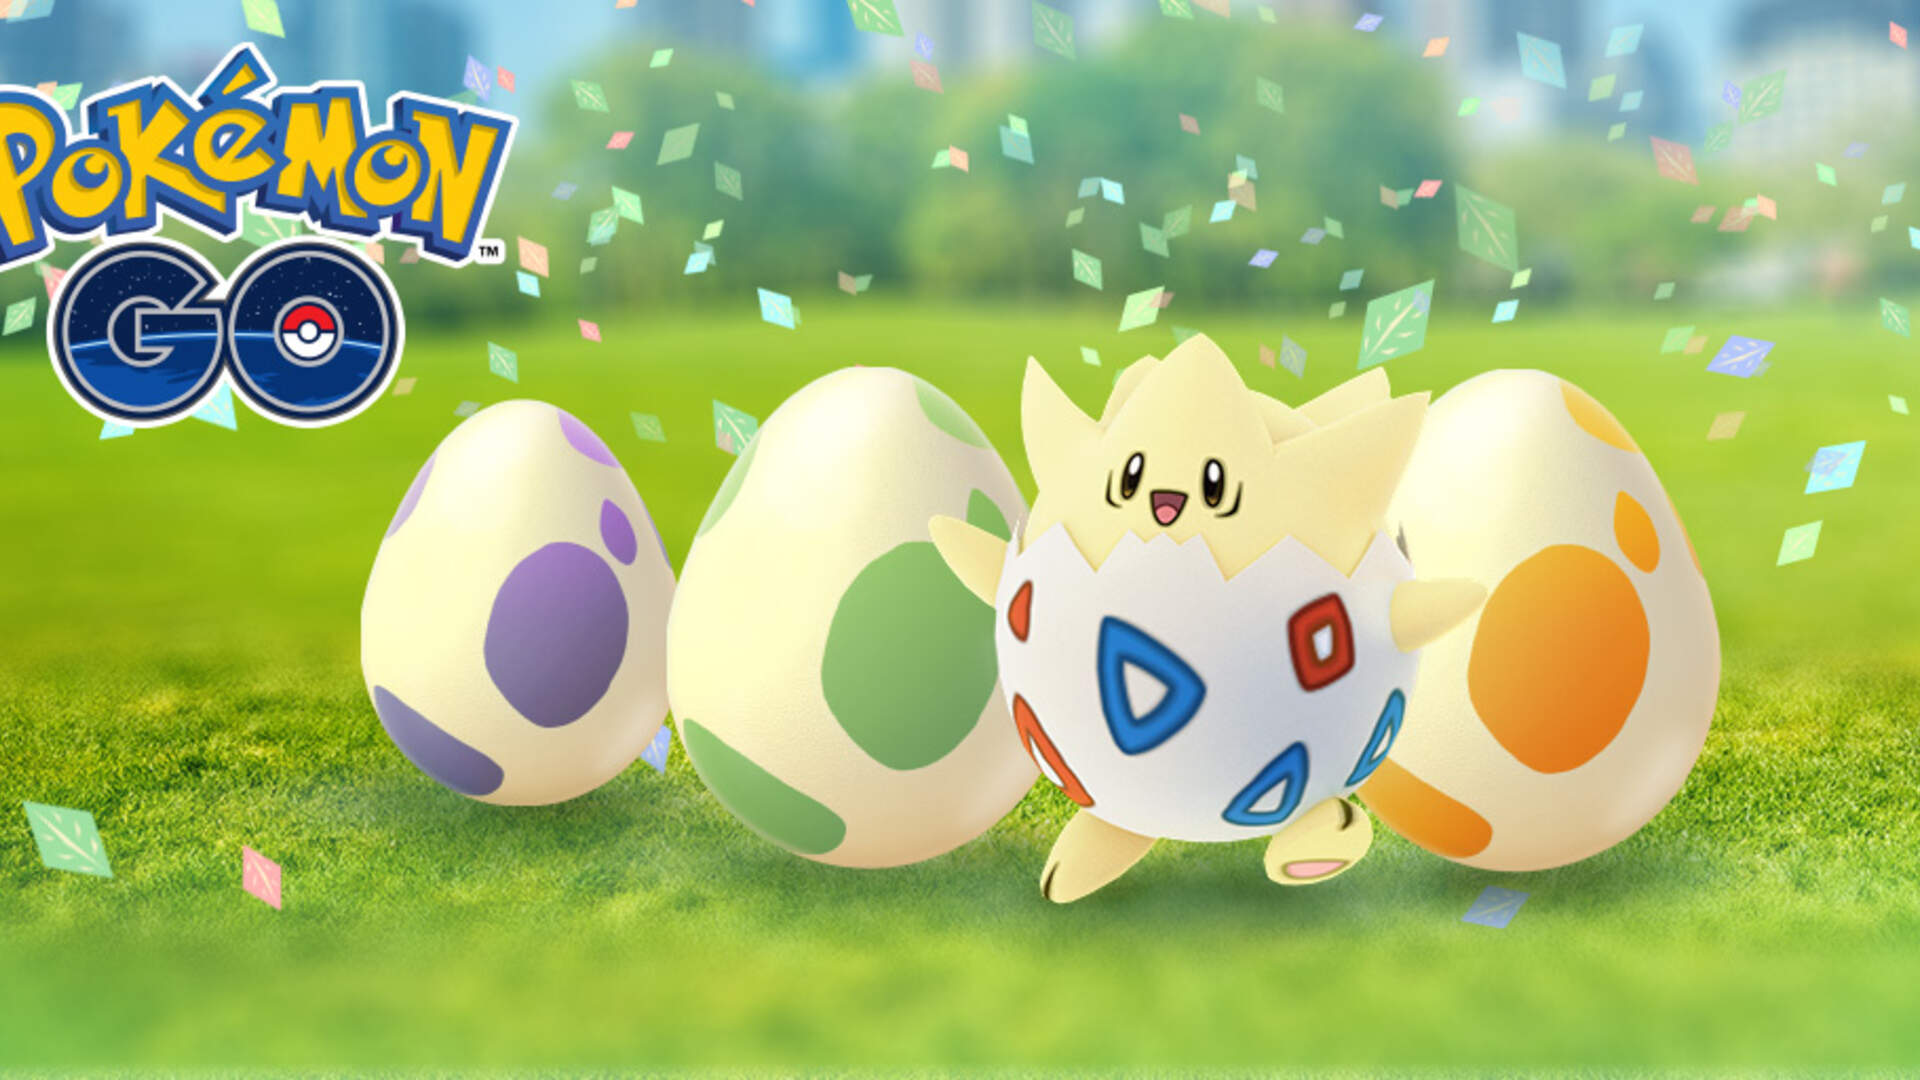 Pokemon GO Easter Event - Start and End Date, Double XP and Lucky Egg Bonuses, Level Quickly During the Eggtravaganza